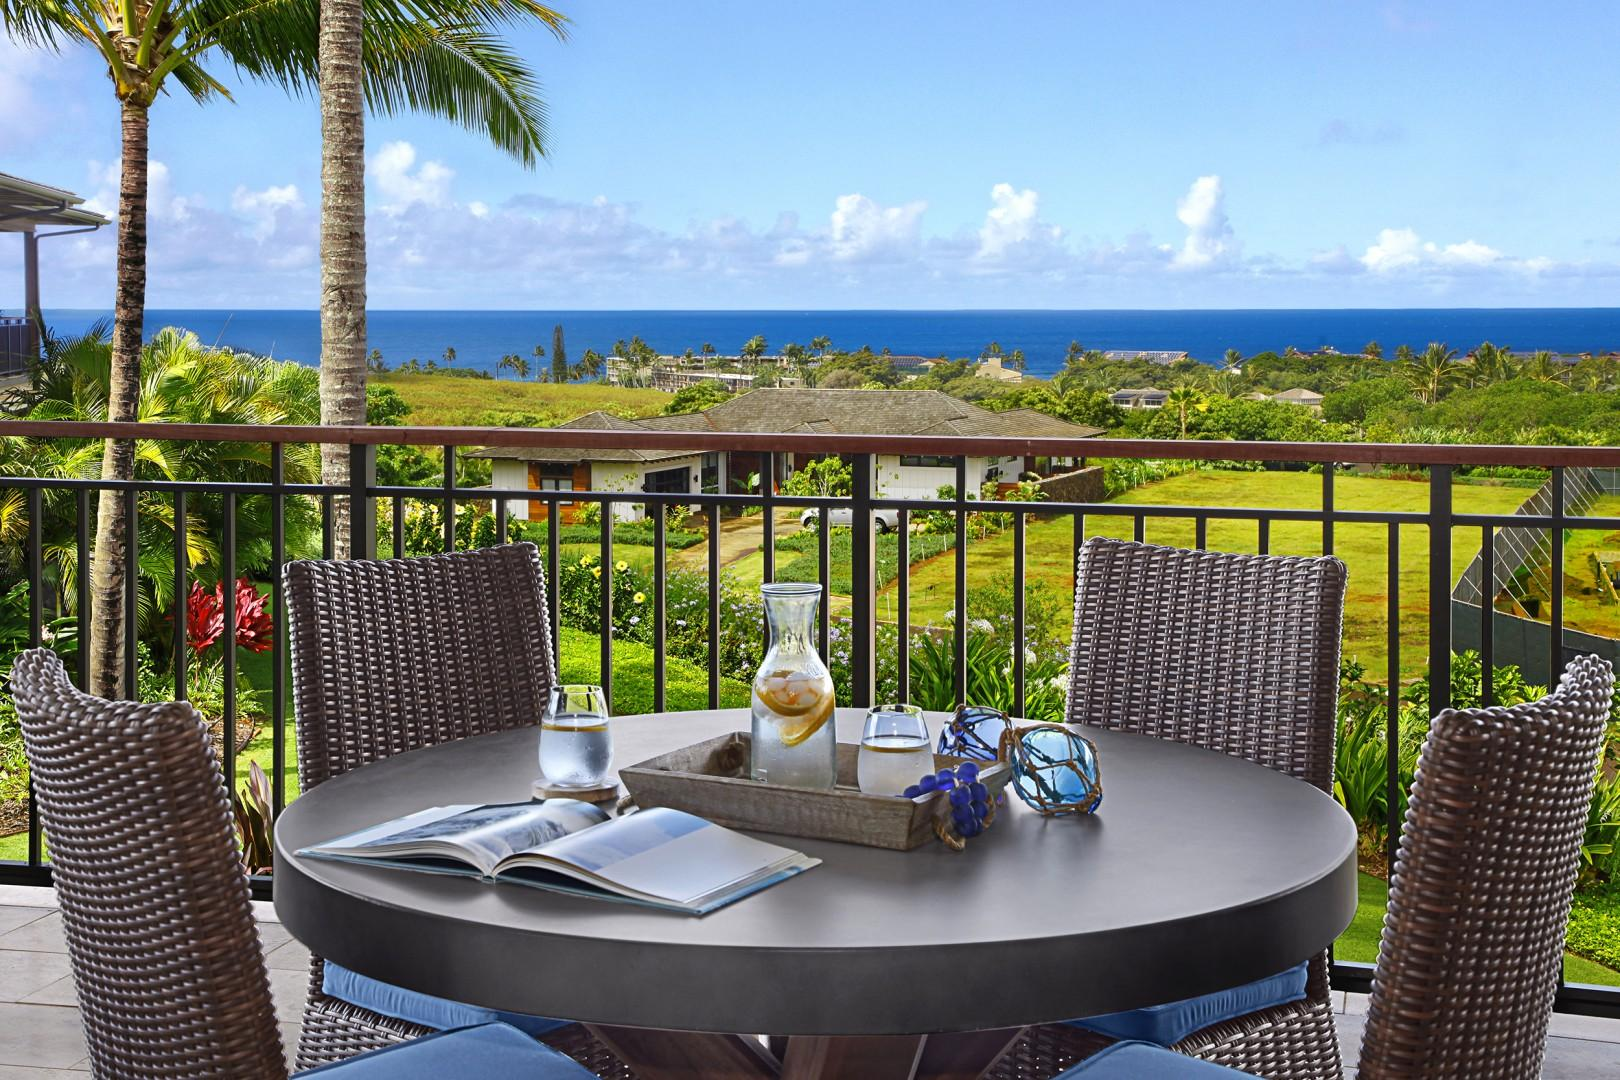 Relax on the lanai with amazing ocean views